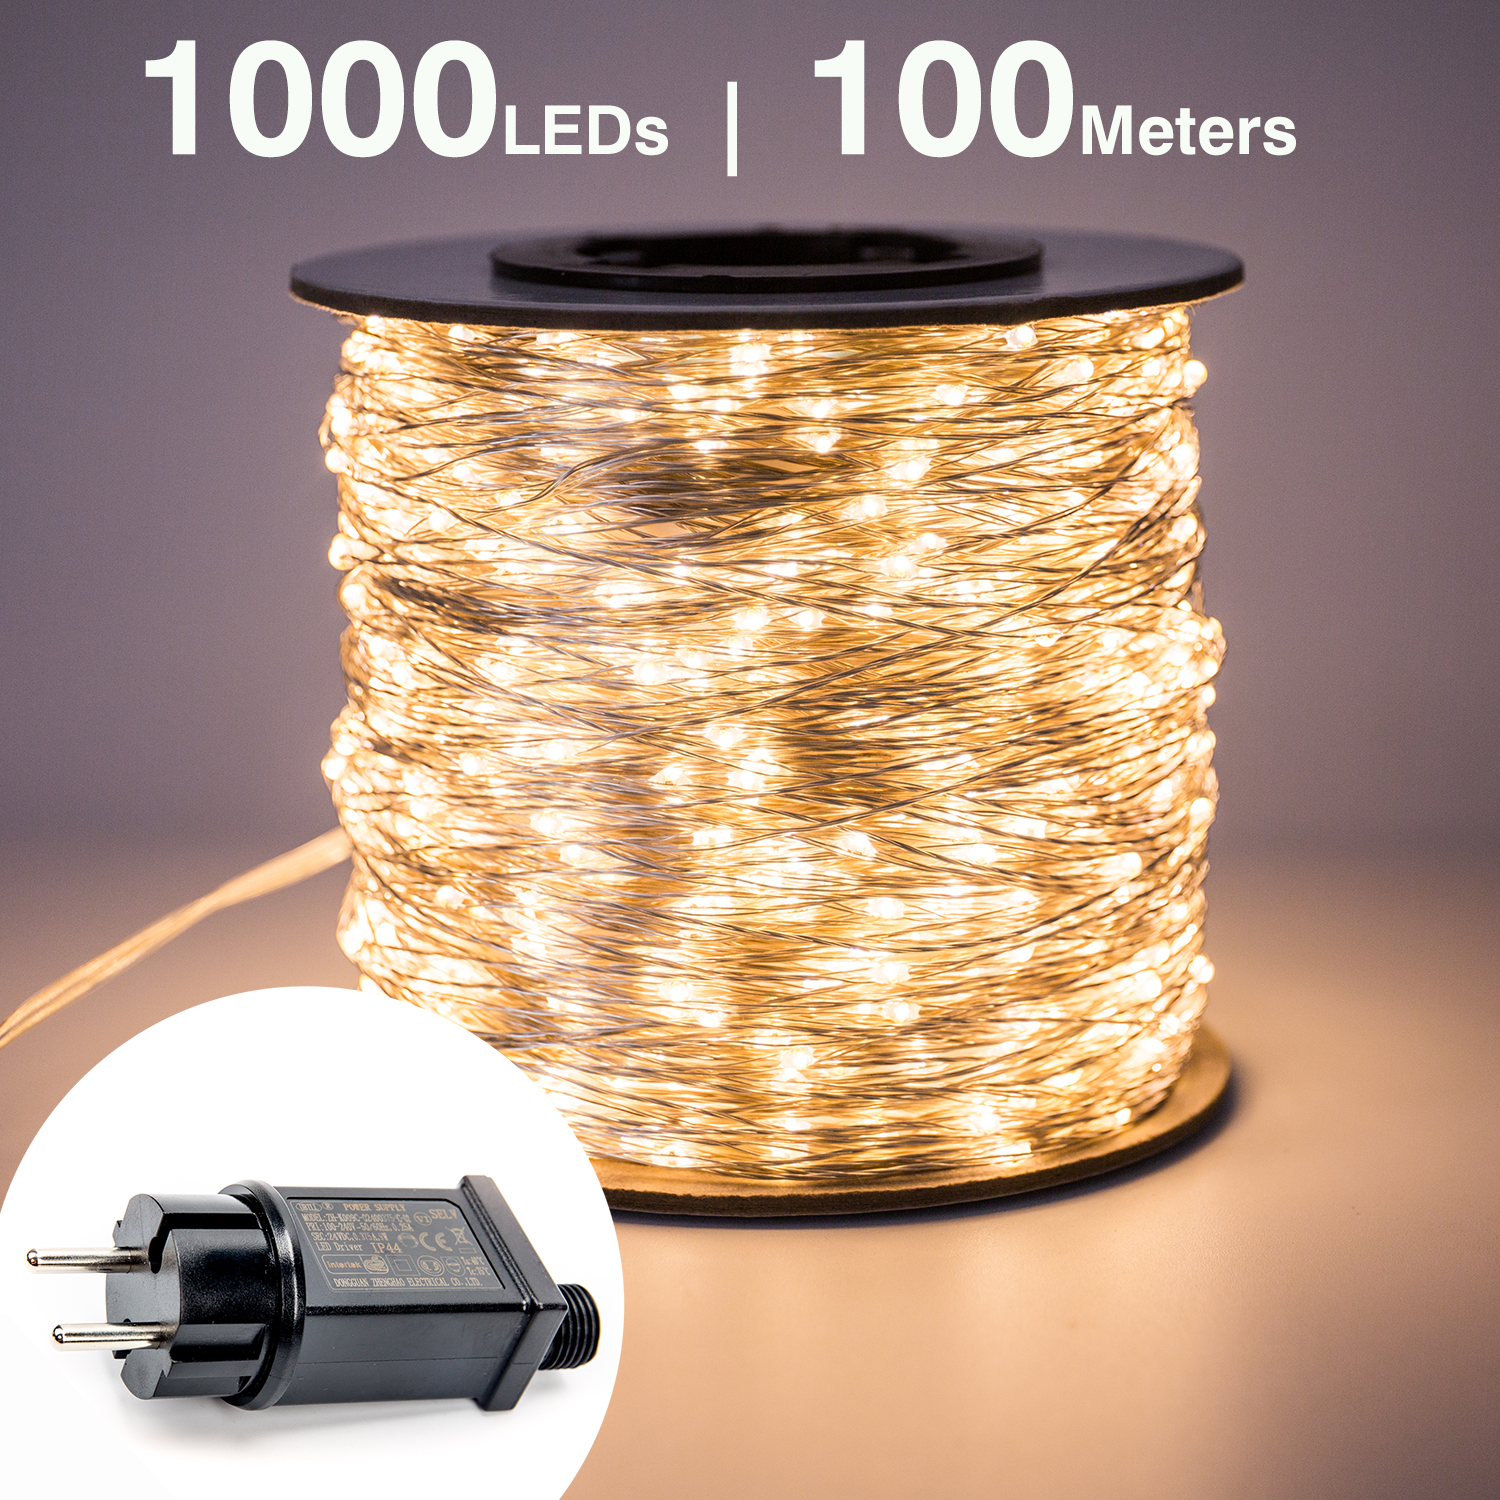 30 M 50 M 100 M Led String Lights Straat Garland Light Waterdicht Voor Outdoor Christmas Fairy Lights Holiday Wedding decoratie